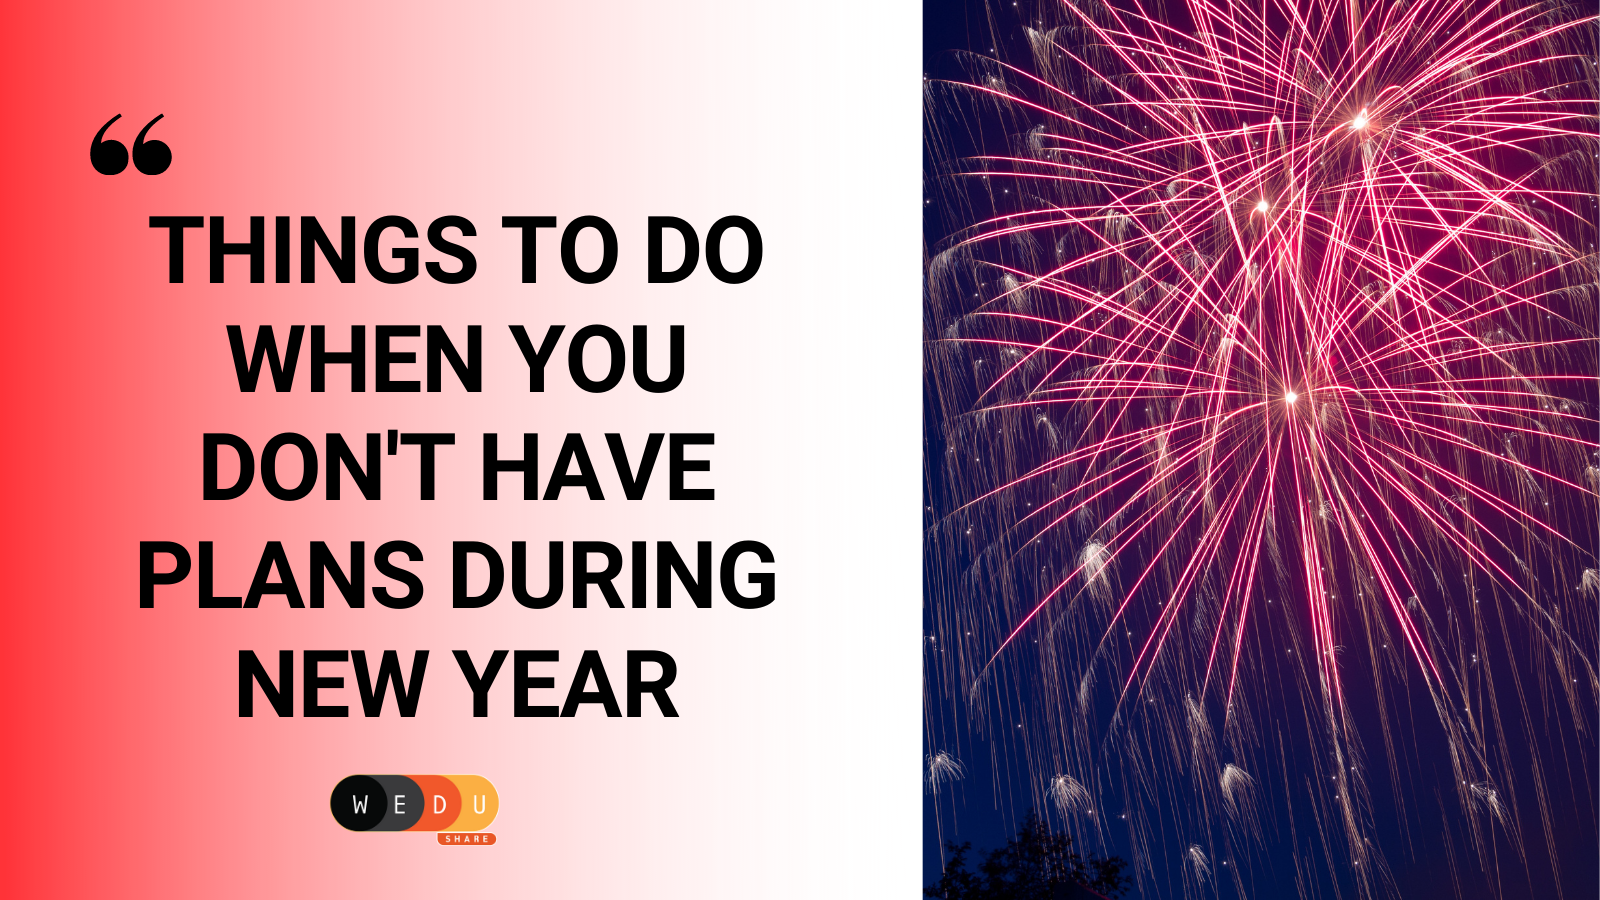 Things To Do When You Don't Have Plans During New Year